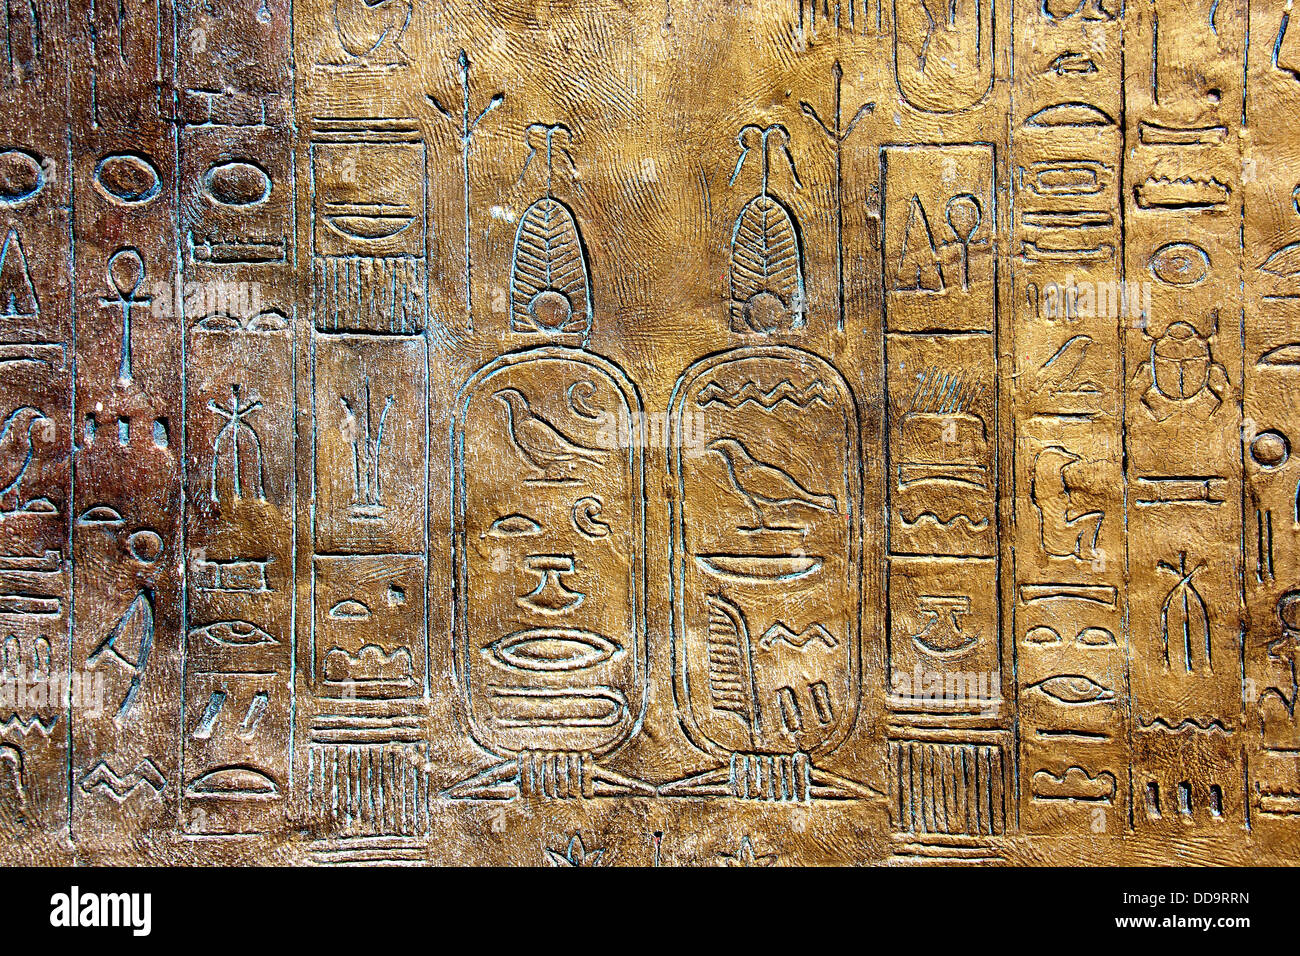 Ancient hieroglyphs on wall. - Stock Image